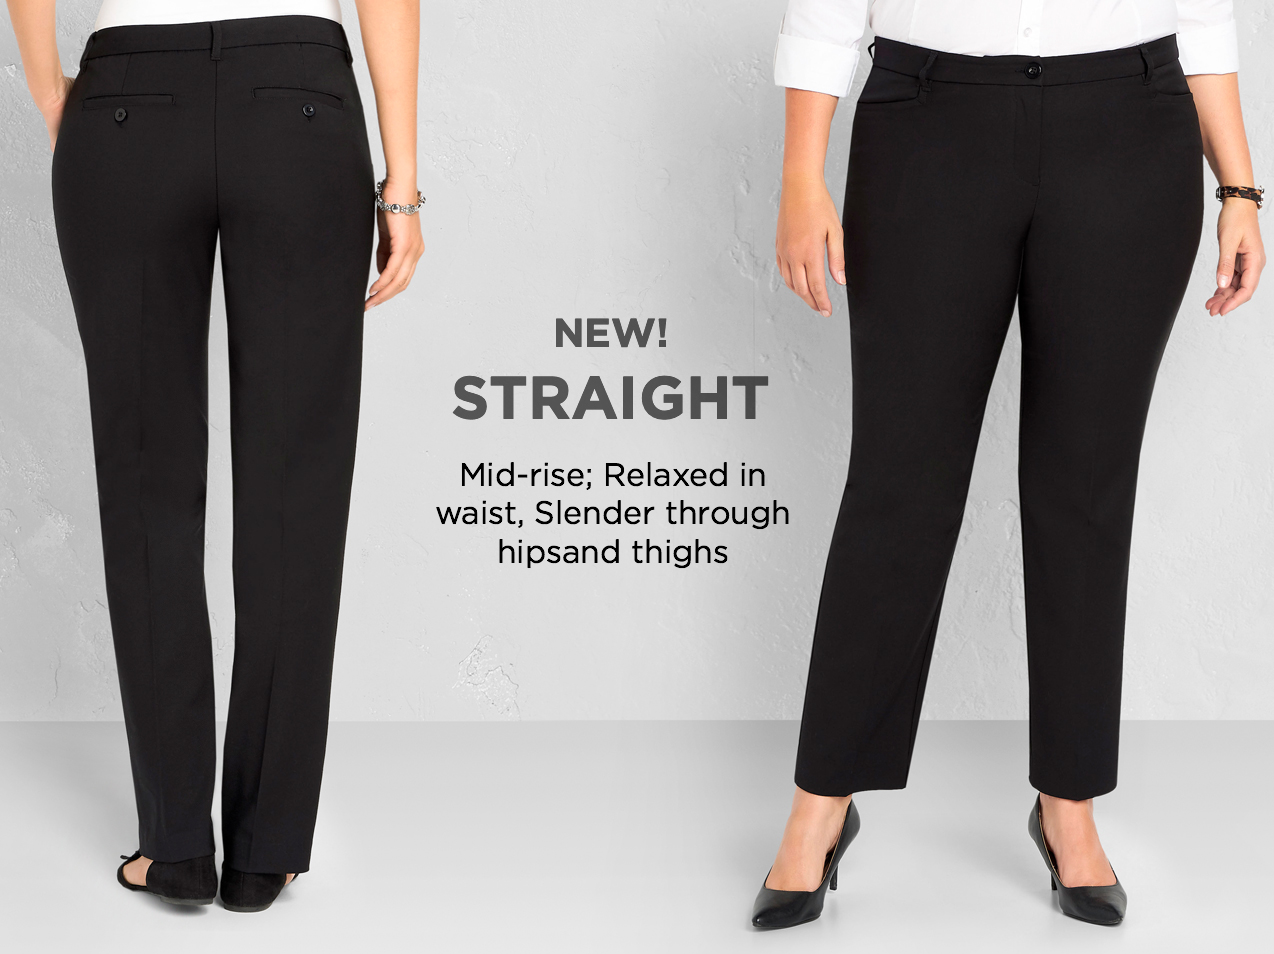 New! Straight: Relaxed in waist, Slender through hips and thighs.